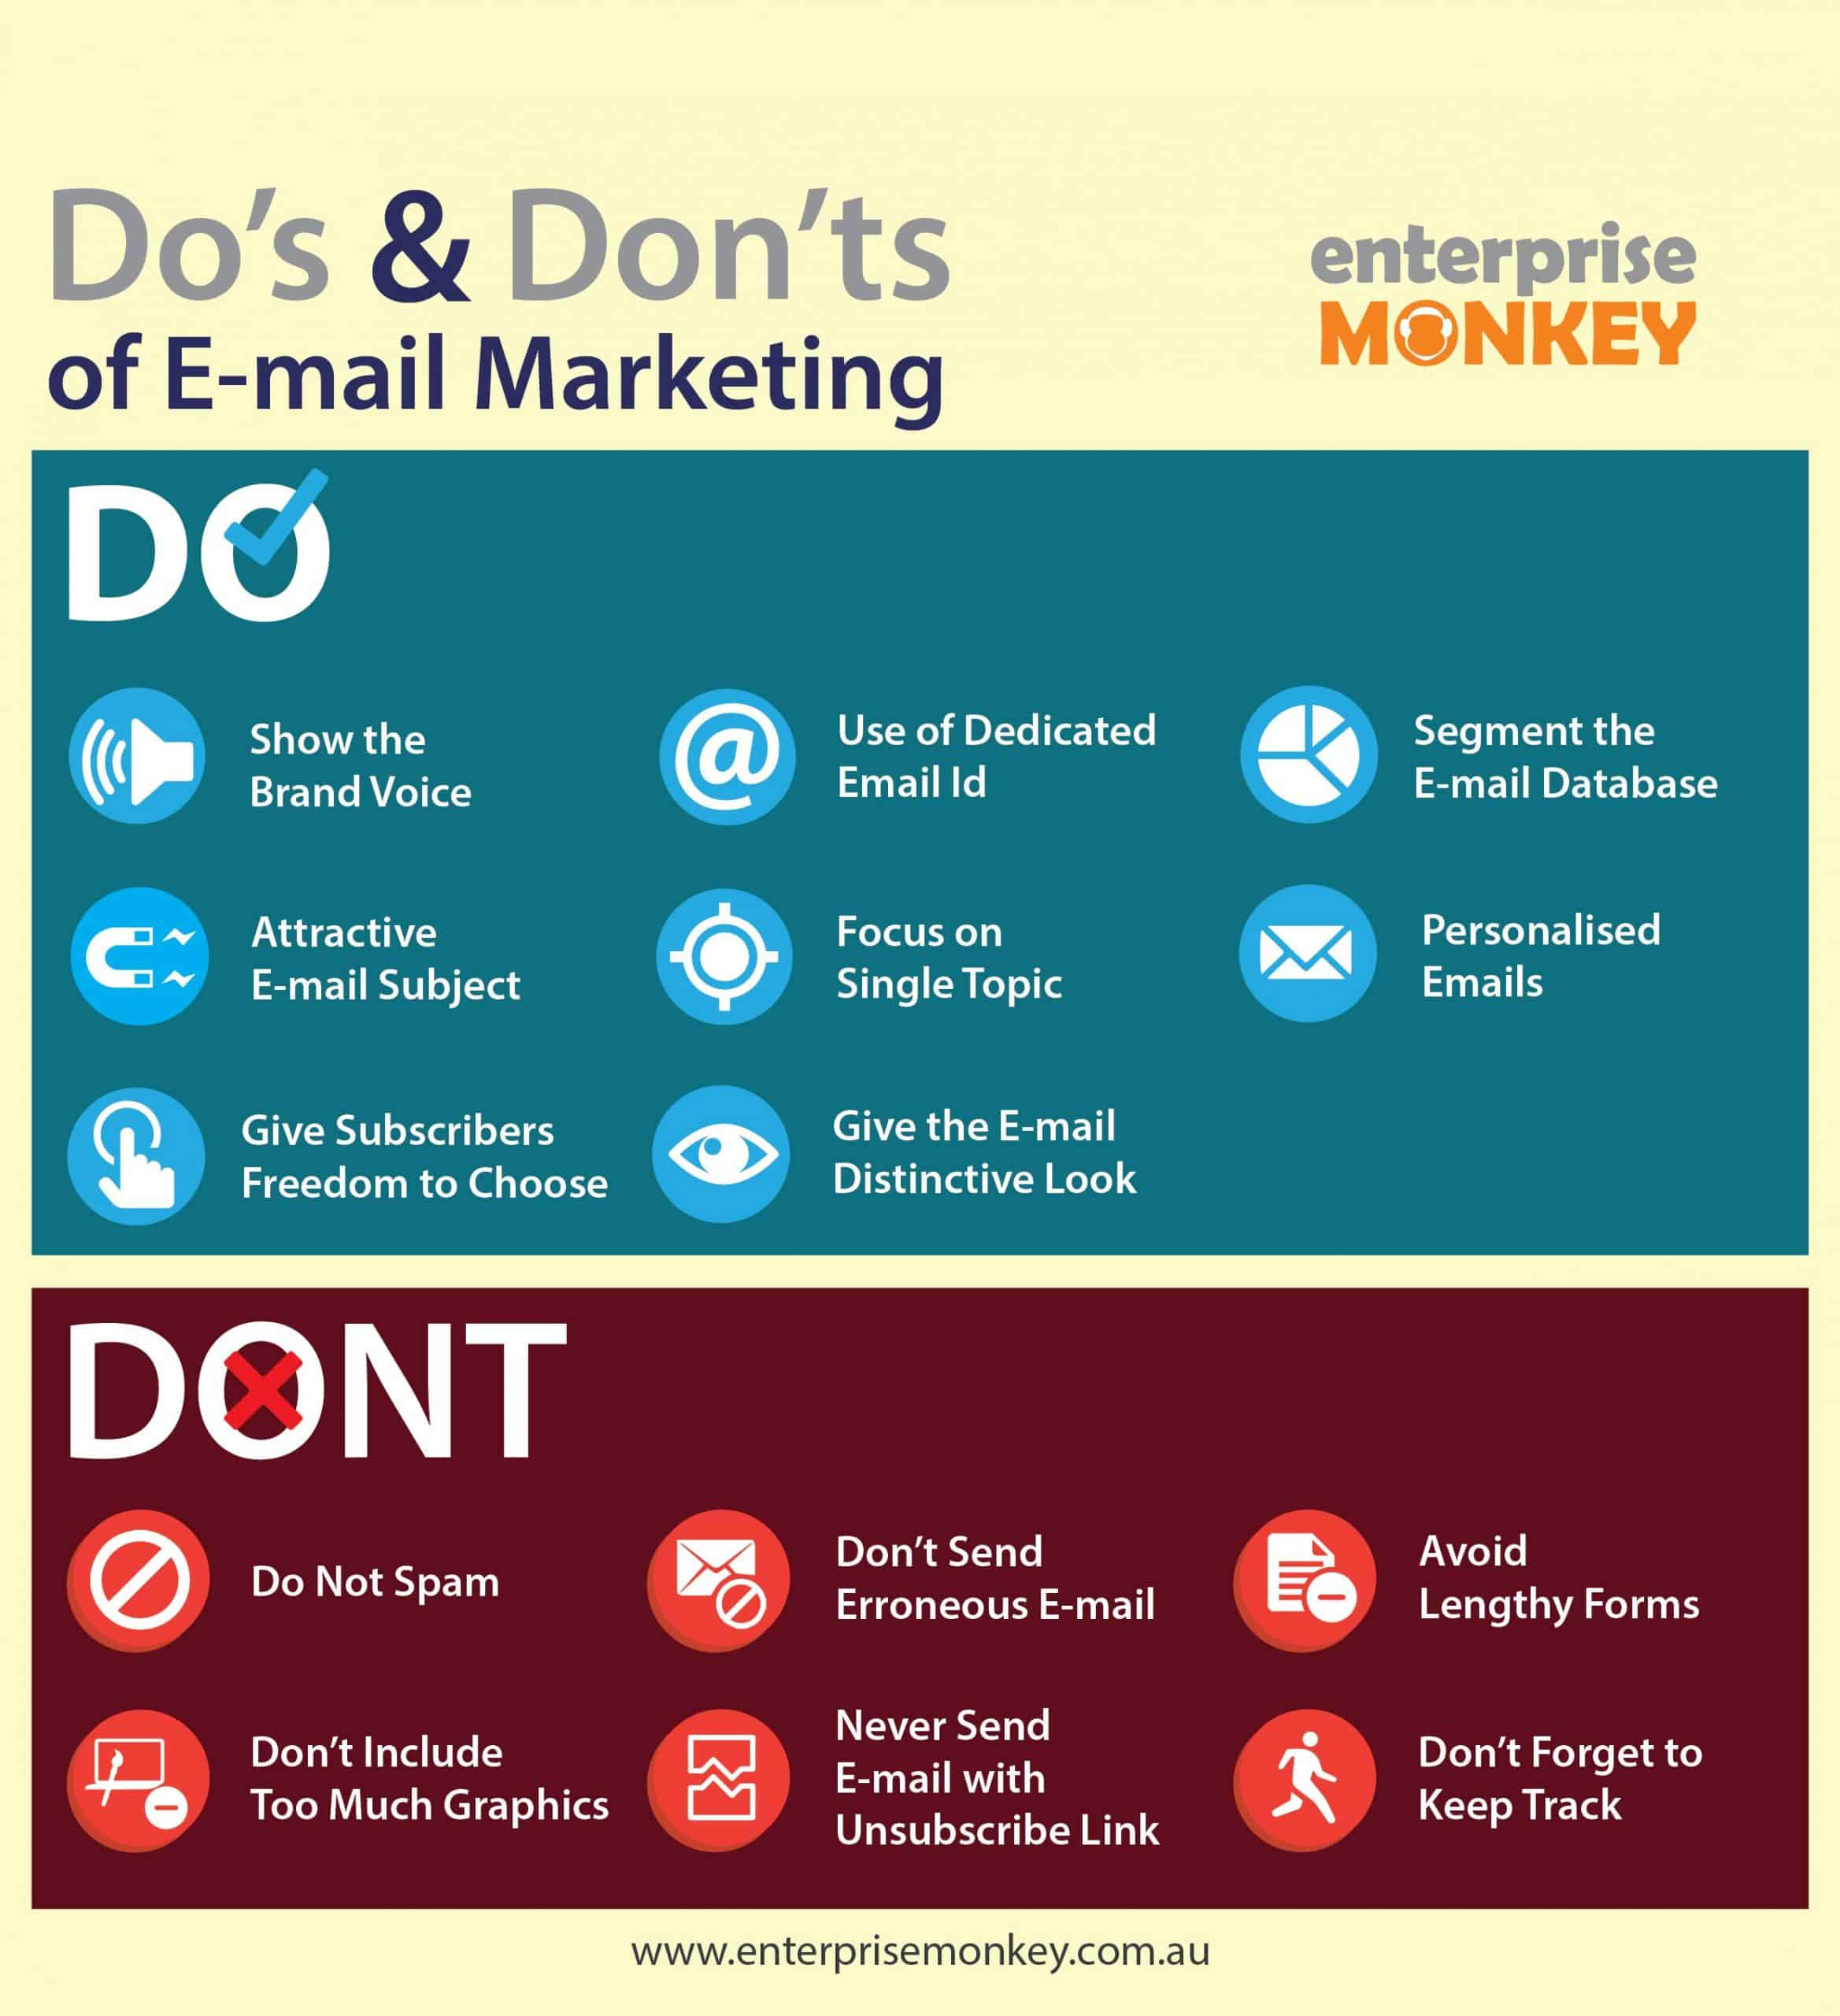 dos and donts of email marketing